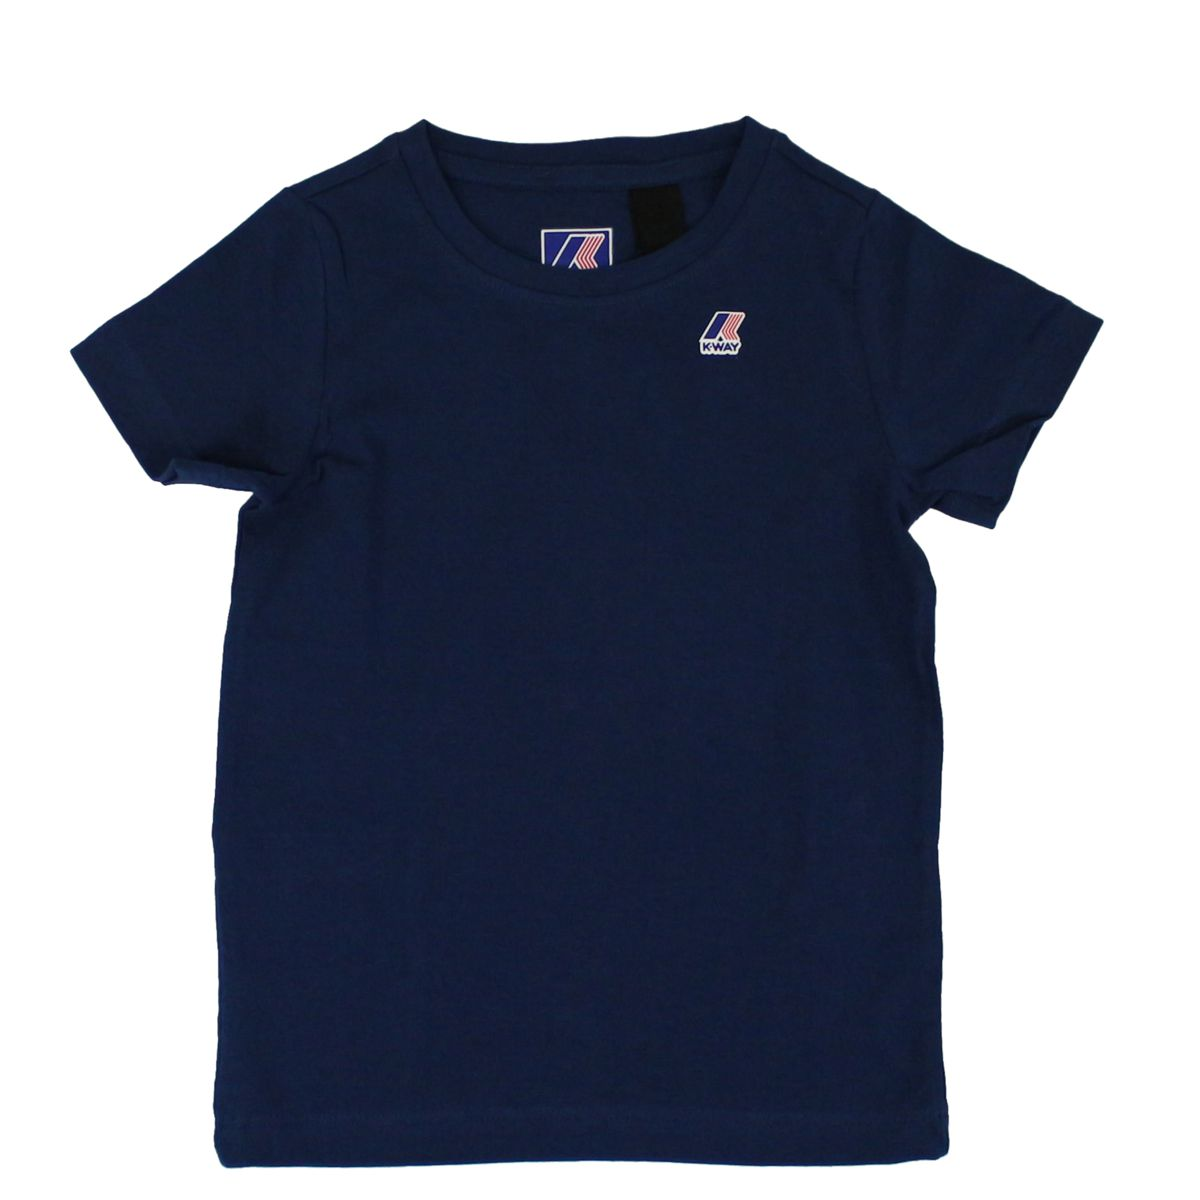 Le Vrai Edouard T-shirt Blue K-Way